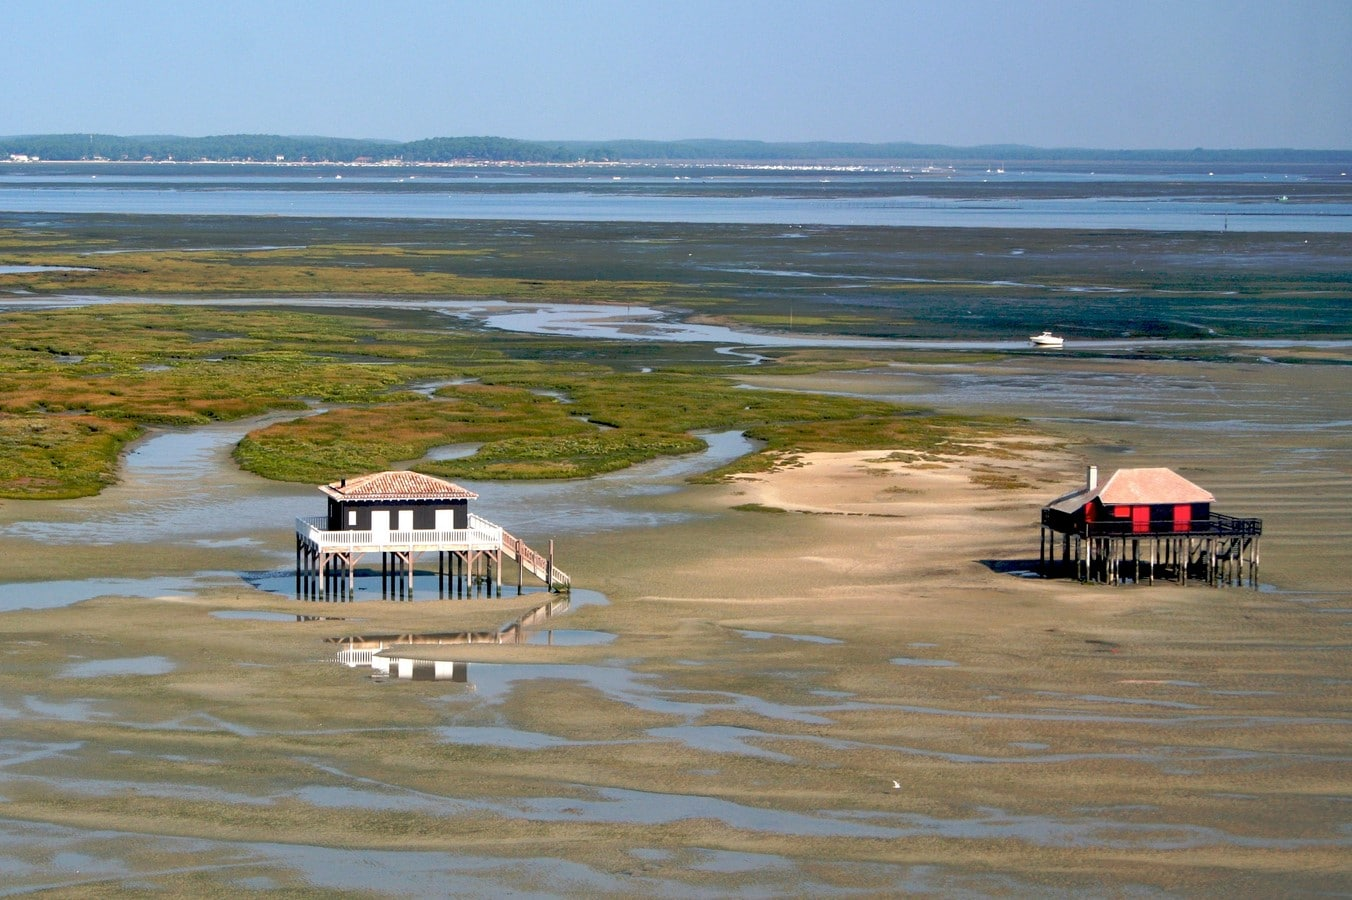 Bassin d Arcachon Cabanes tchanquees maree basse